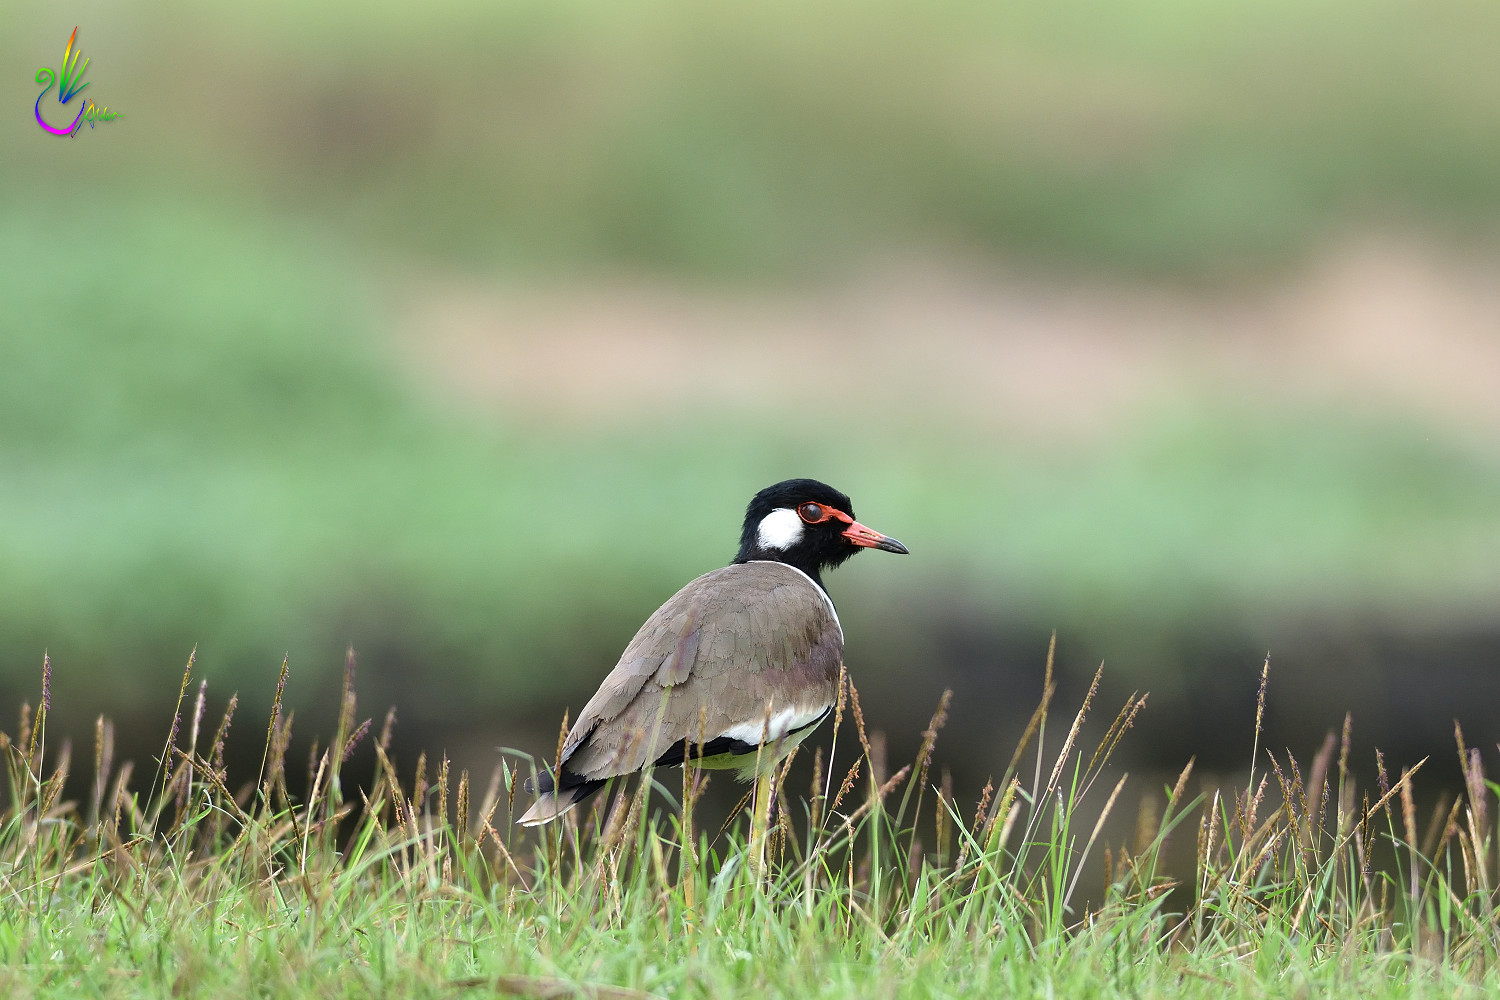 Red-wattled_Lapwing_3368